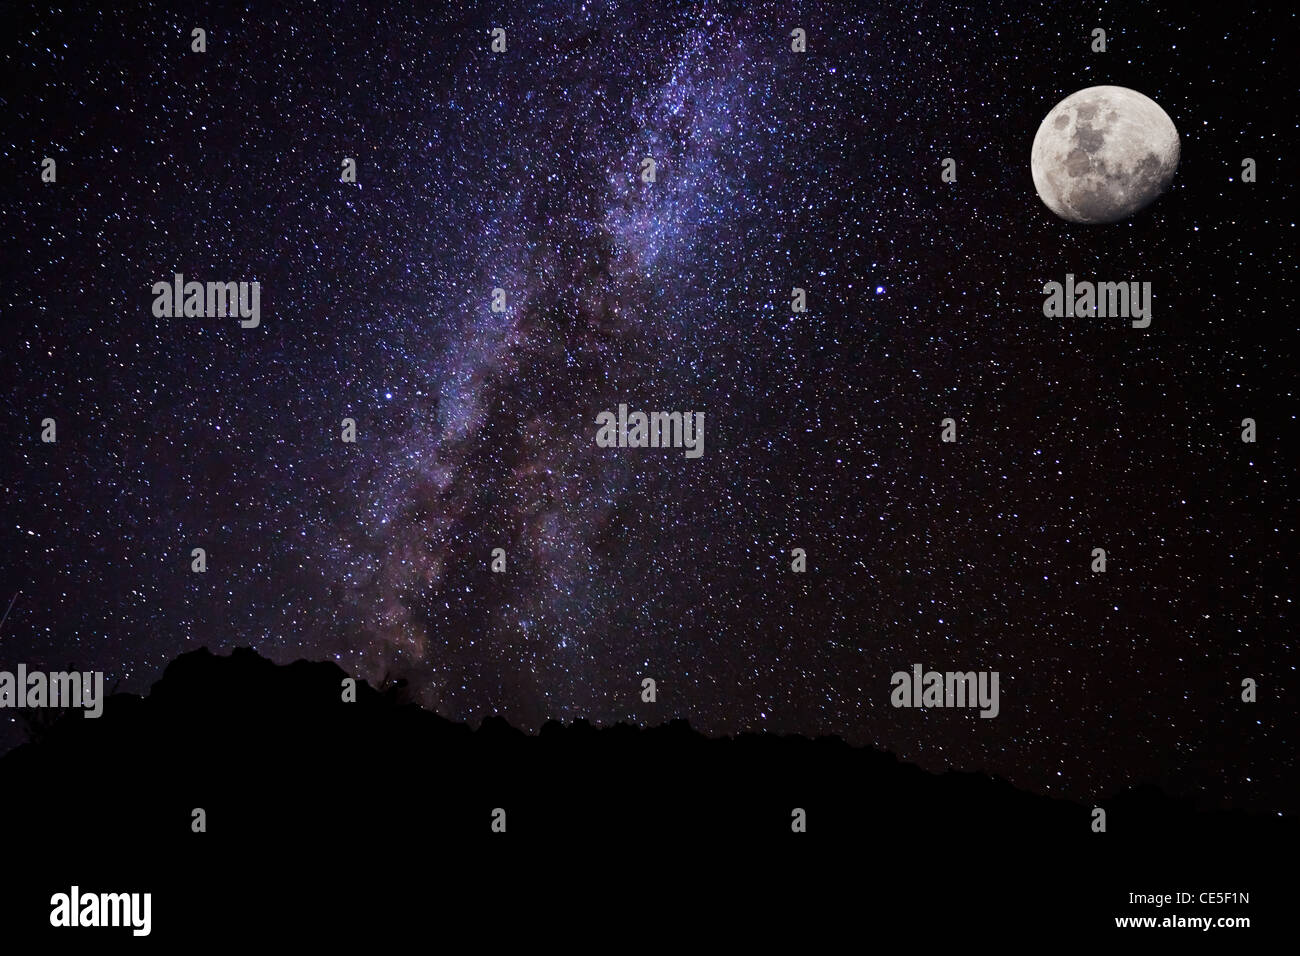 Stars in the Night Sky, Milky Way Galaxy - Stock Image